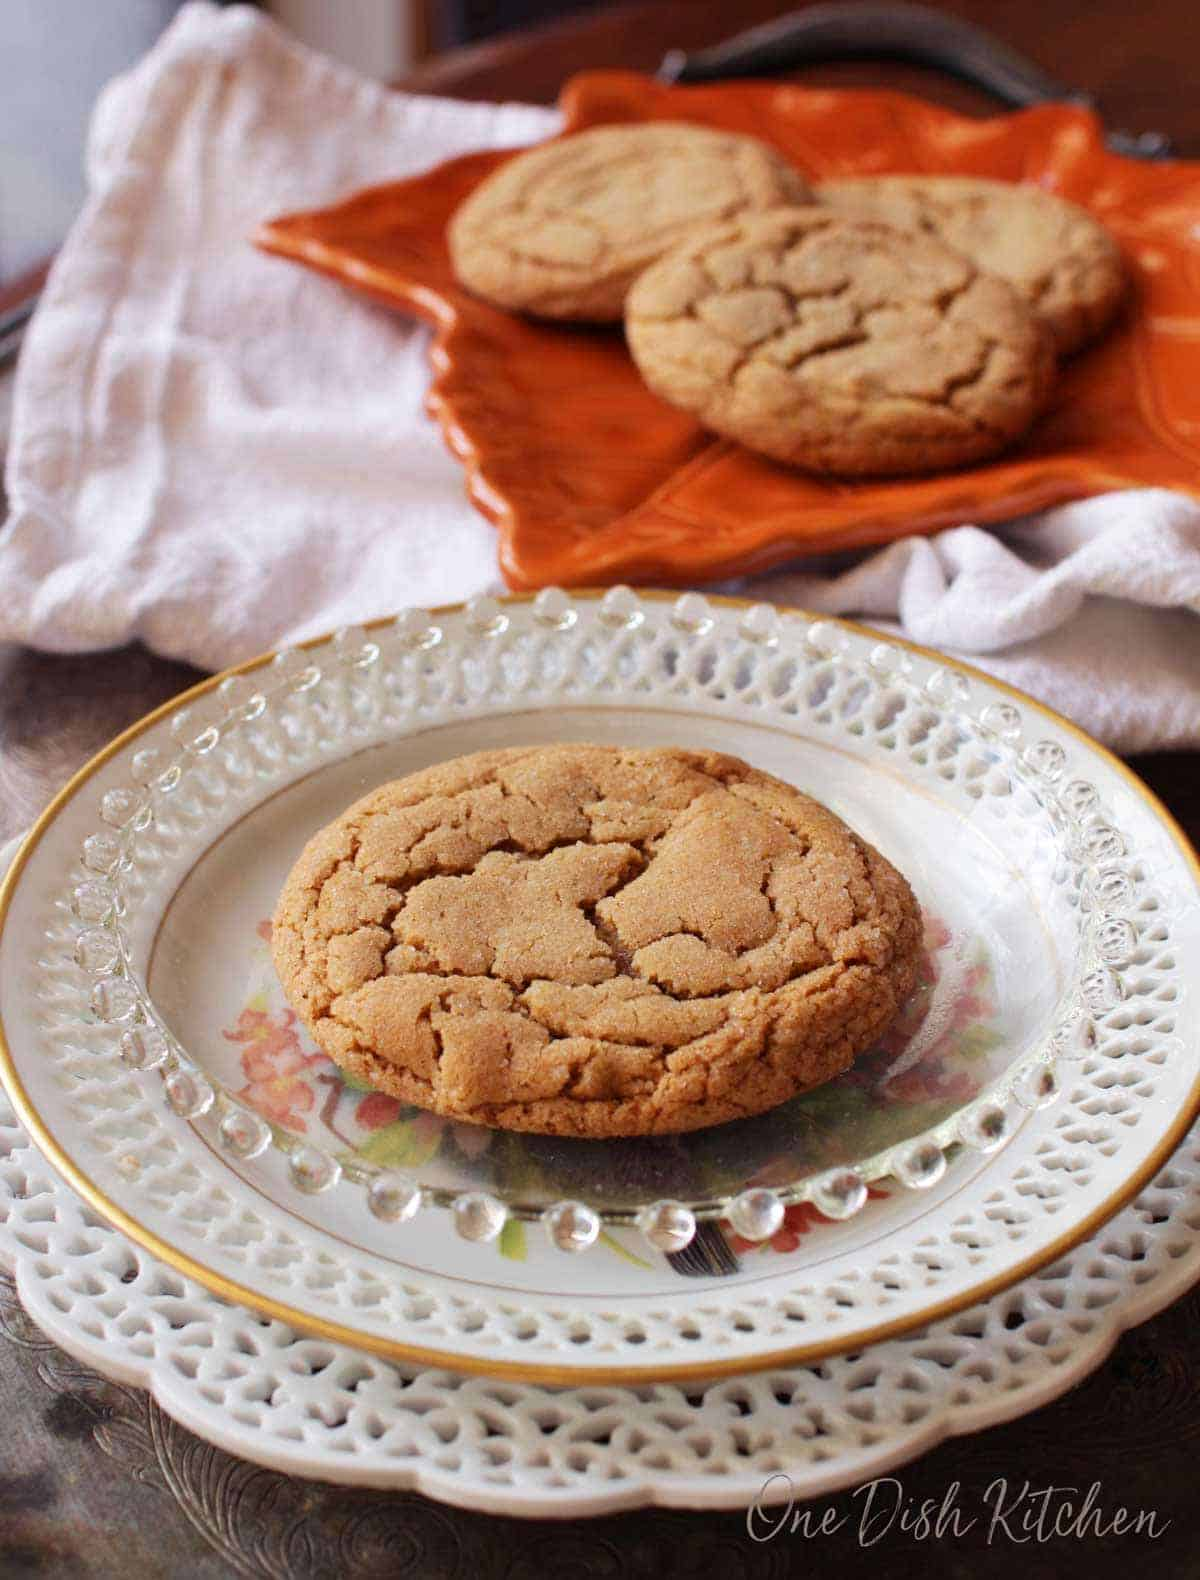 One ginger cookie on a plate with a platter of cookies on a tray in the background